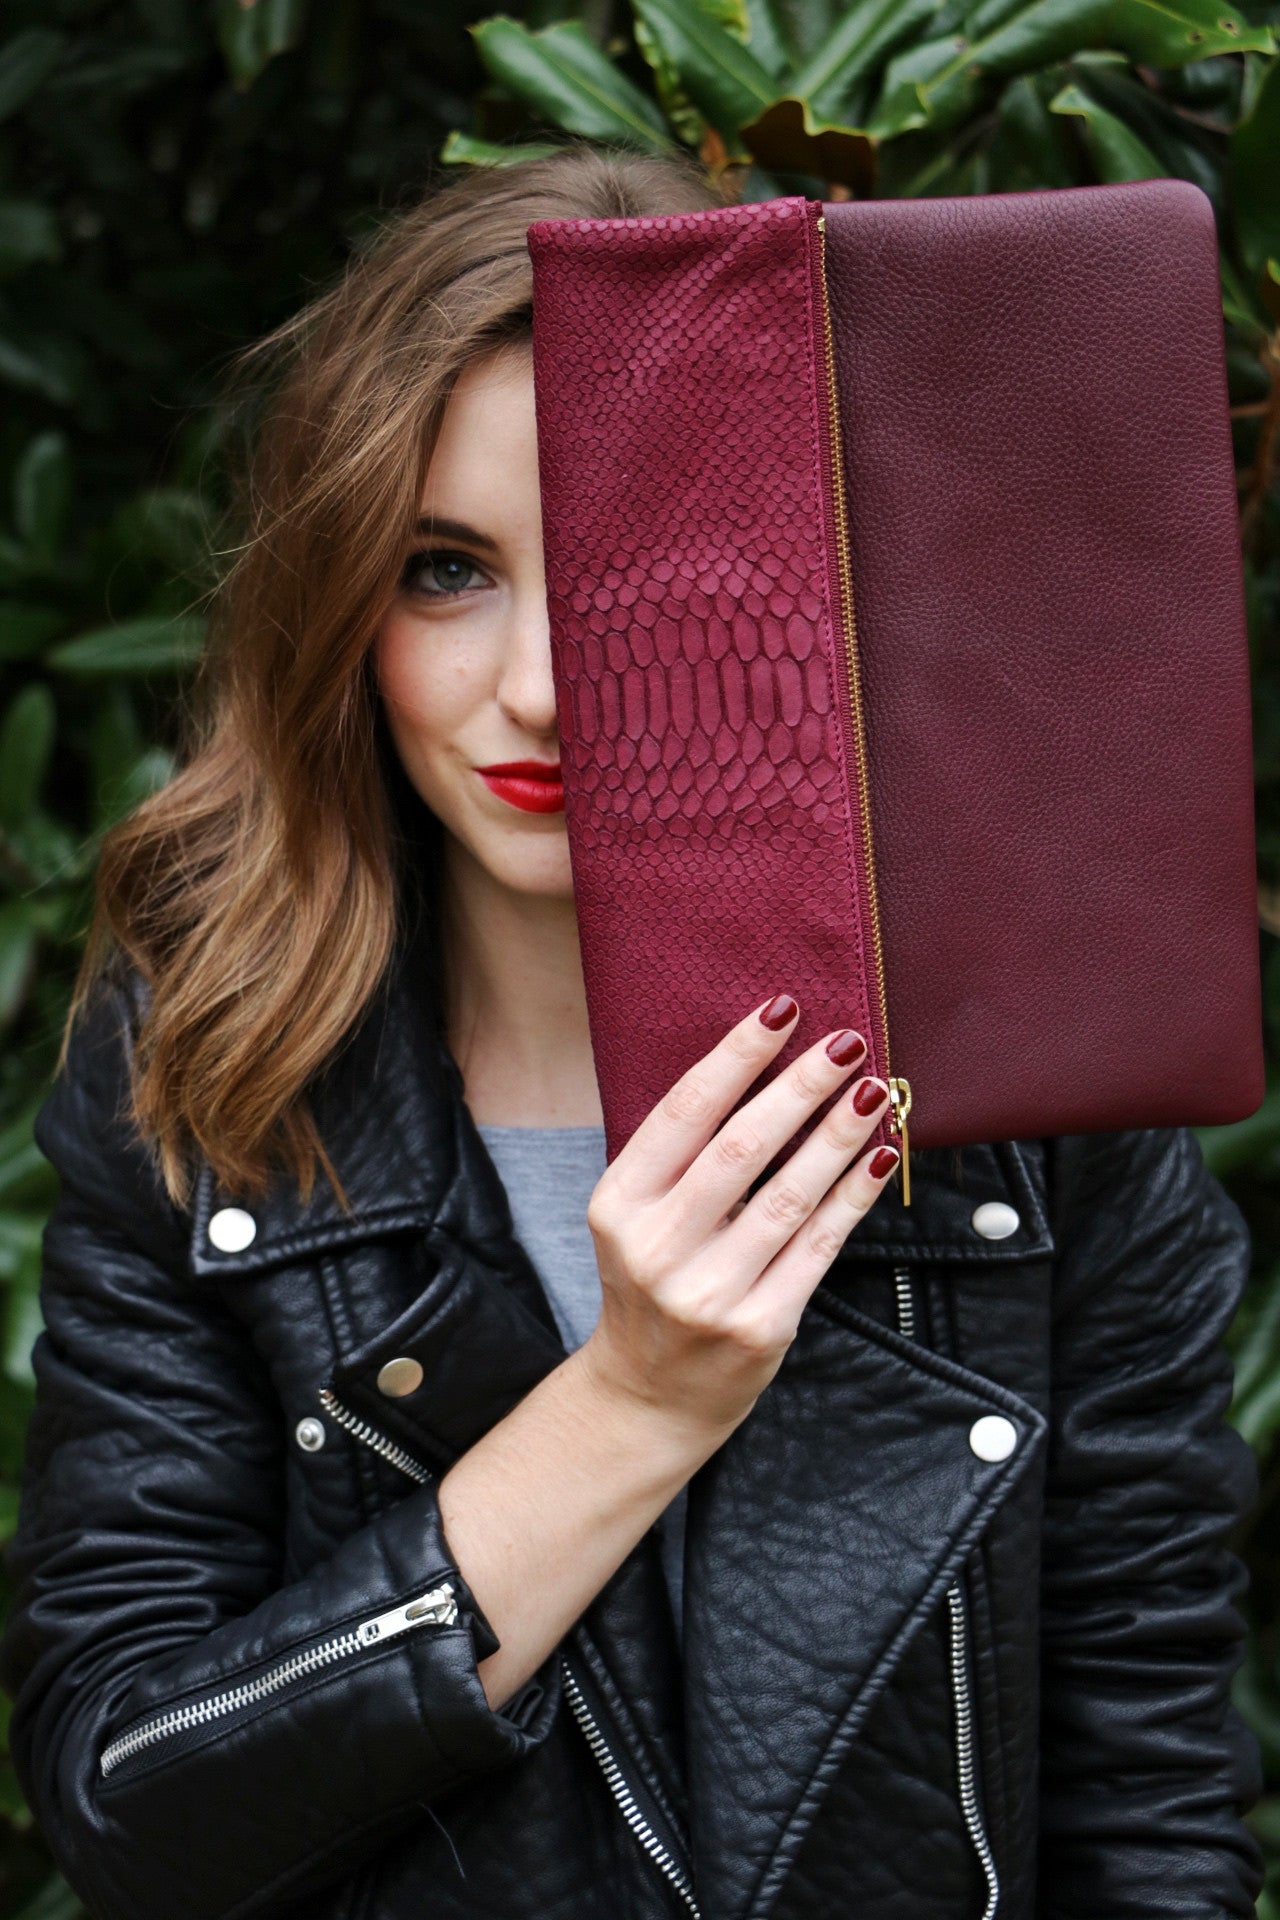 oxblood leather handbag, python handbag, Perfect cross body handbag, Molly Jane Handbags, Southern Living Handbags, southern designer handbags, Gifts for her, Holiday Wishlist, oxblood cross body handbag, italian leather clutch, leather handbag, The perfect clutch